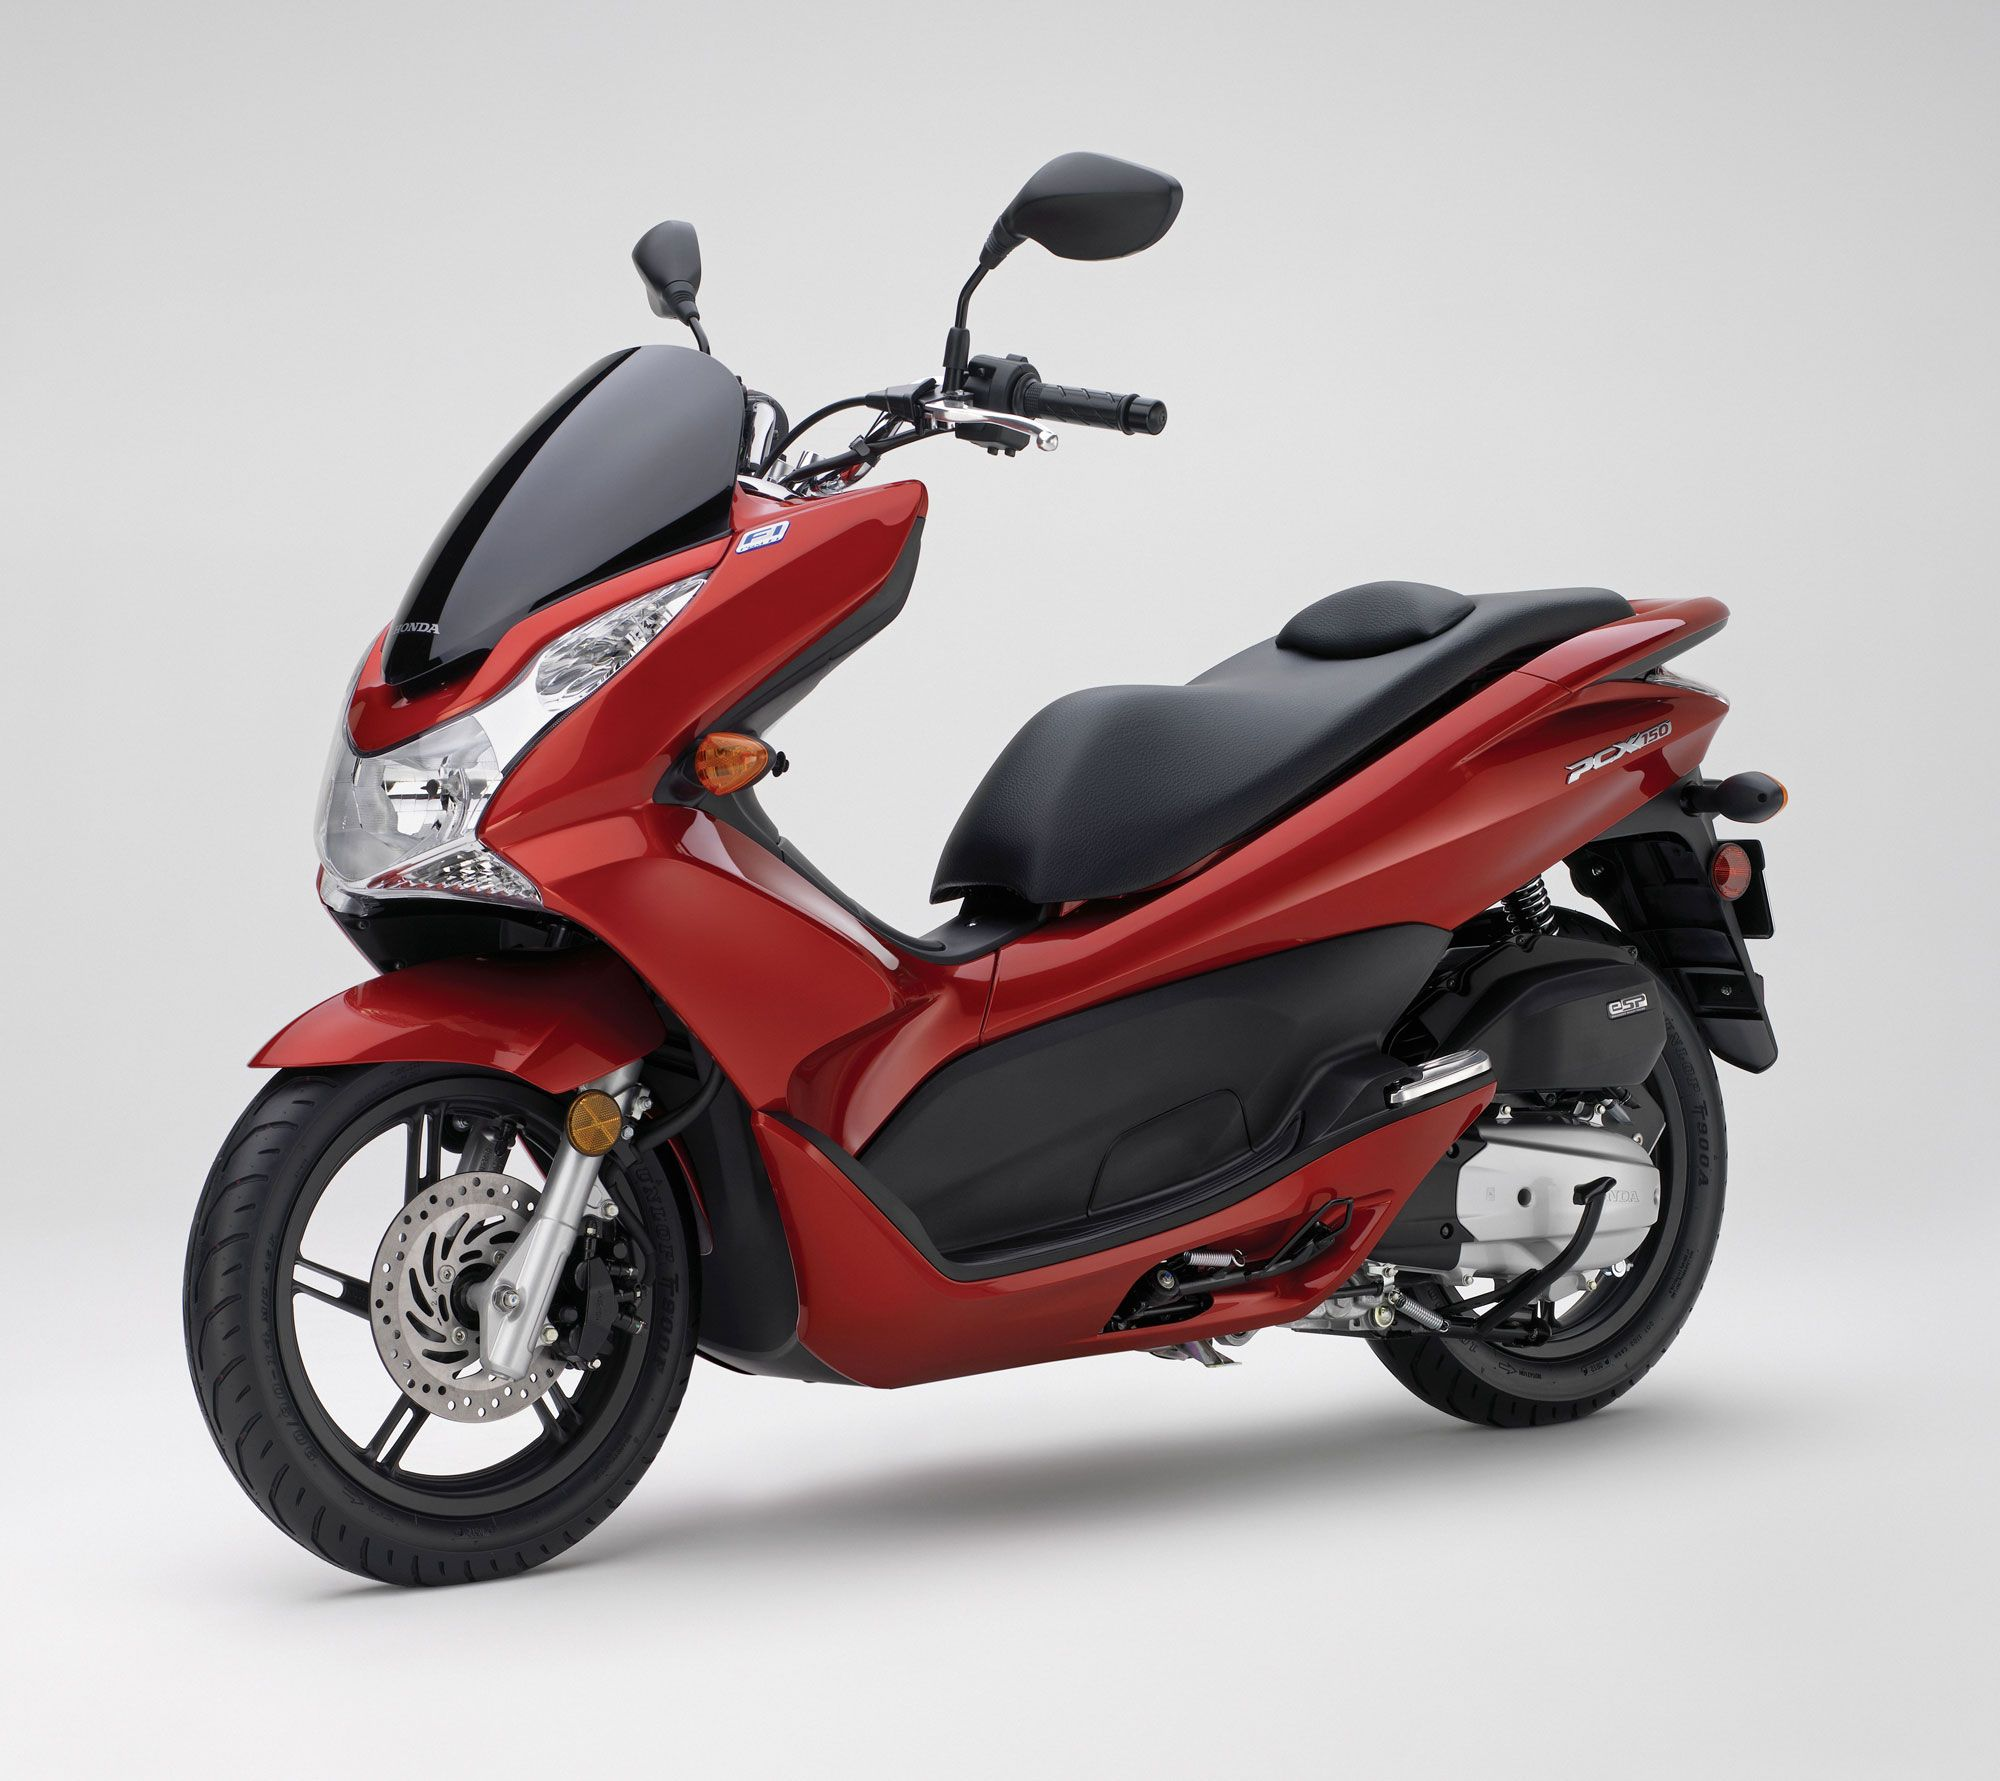 Honda pcx150 2014 not a sport motorcycle and not suitable to be placed in this